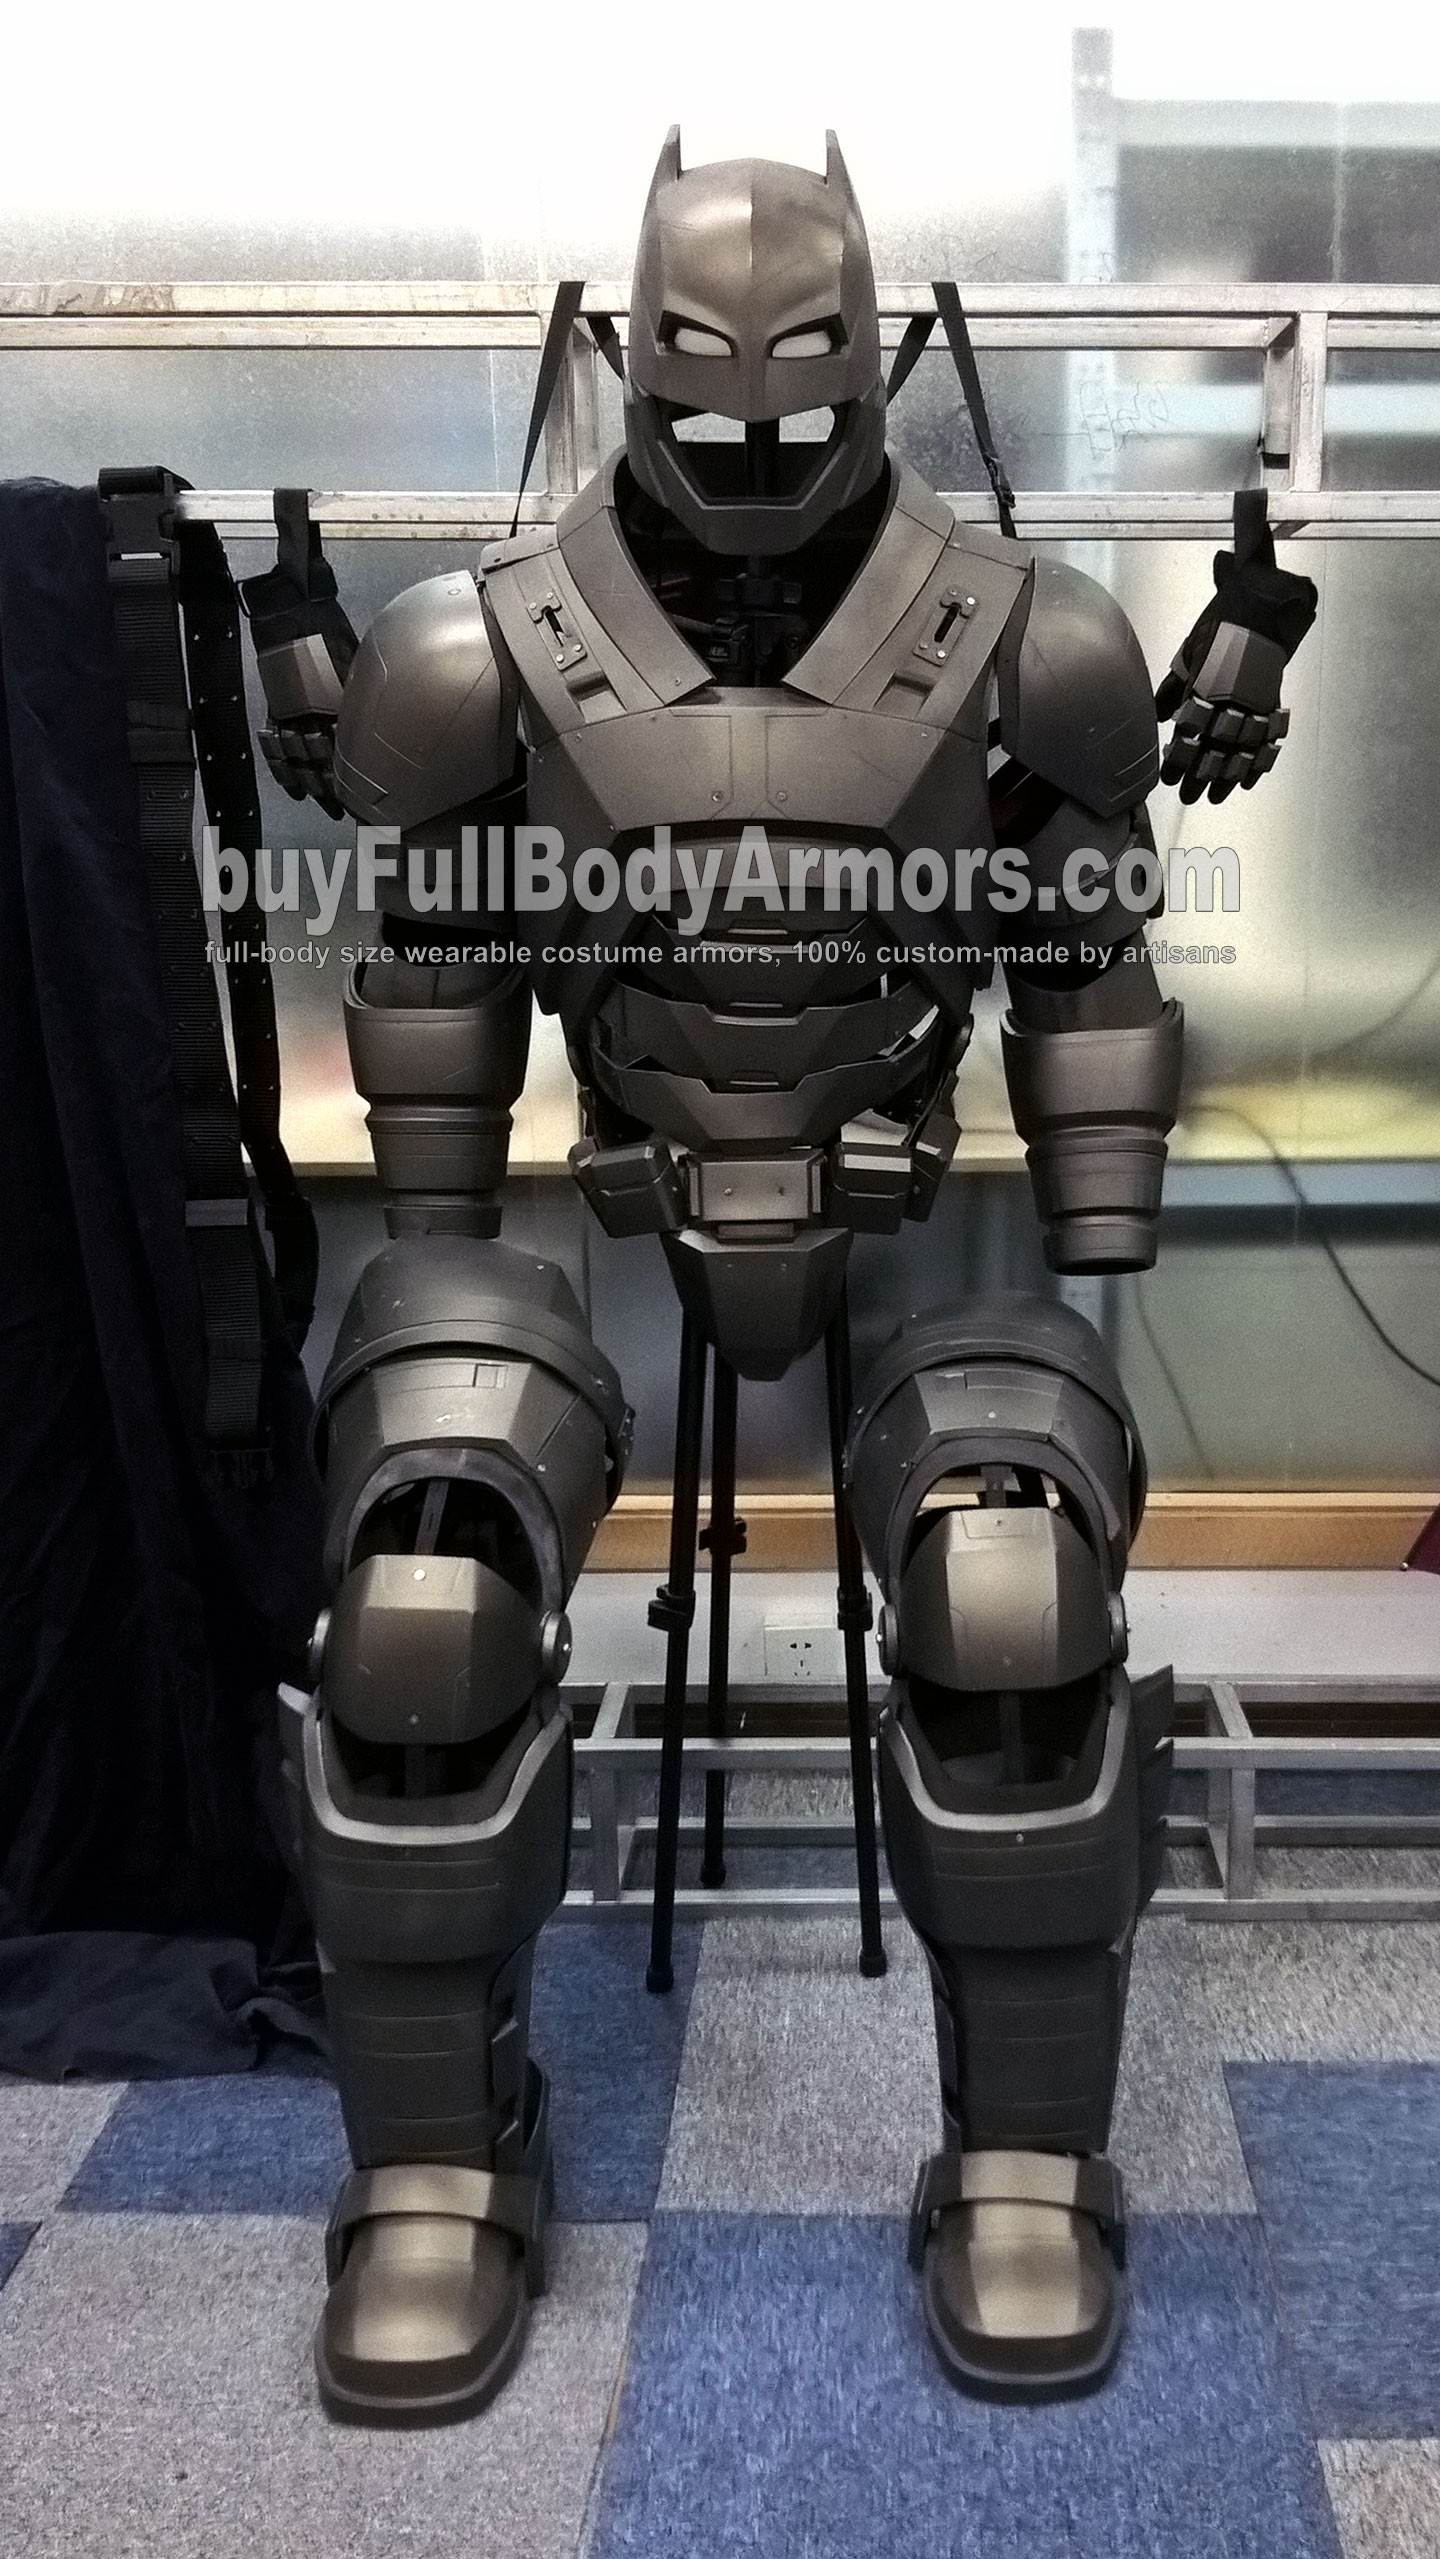 The Wearable Armored Batsuit Costume (Batman Armor Suit in Batman V Superman: Dawn of Justice) Display Status front